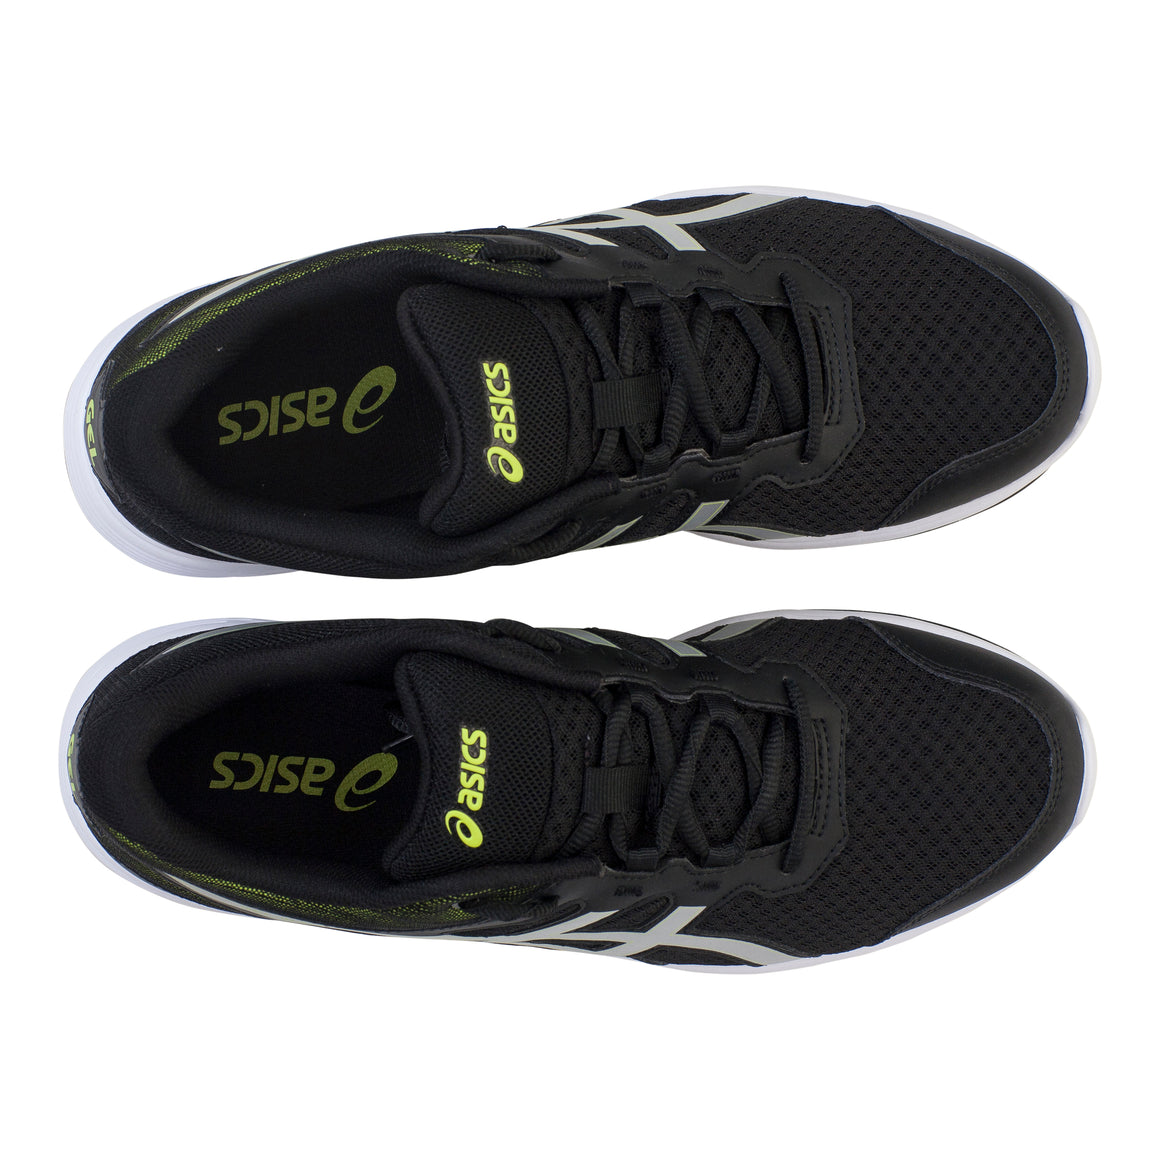 Gel-Ikaia 9 Running Shoes for Men in Black/Lime Zest